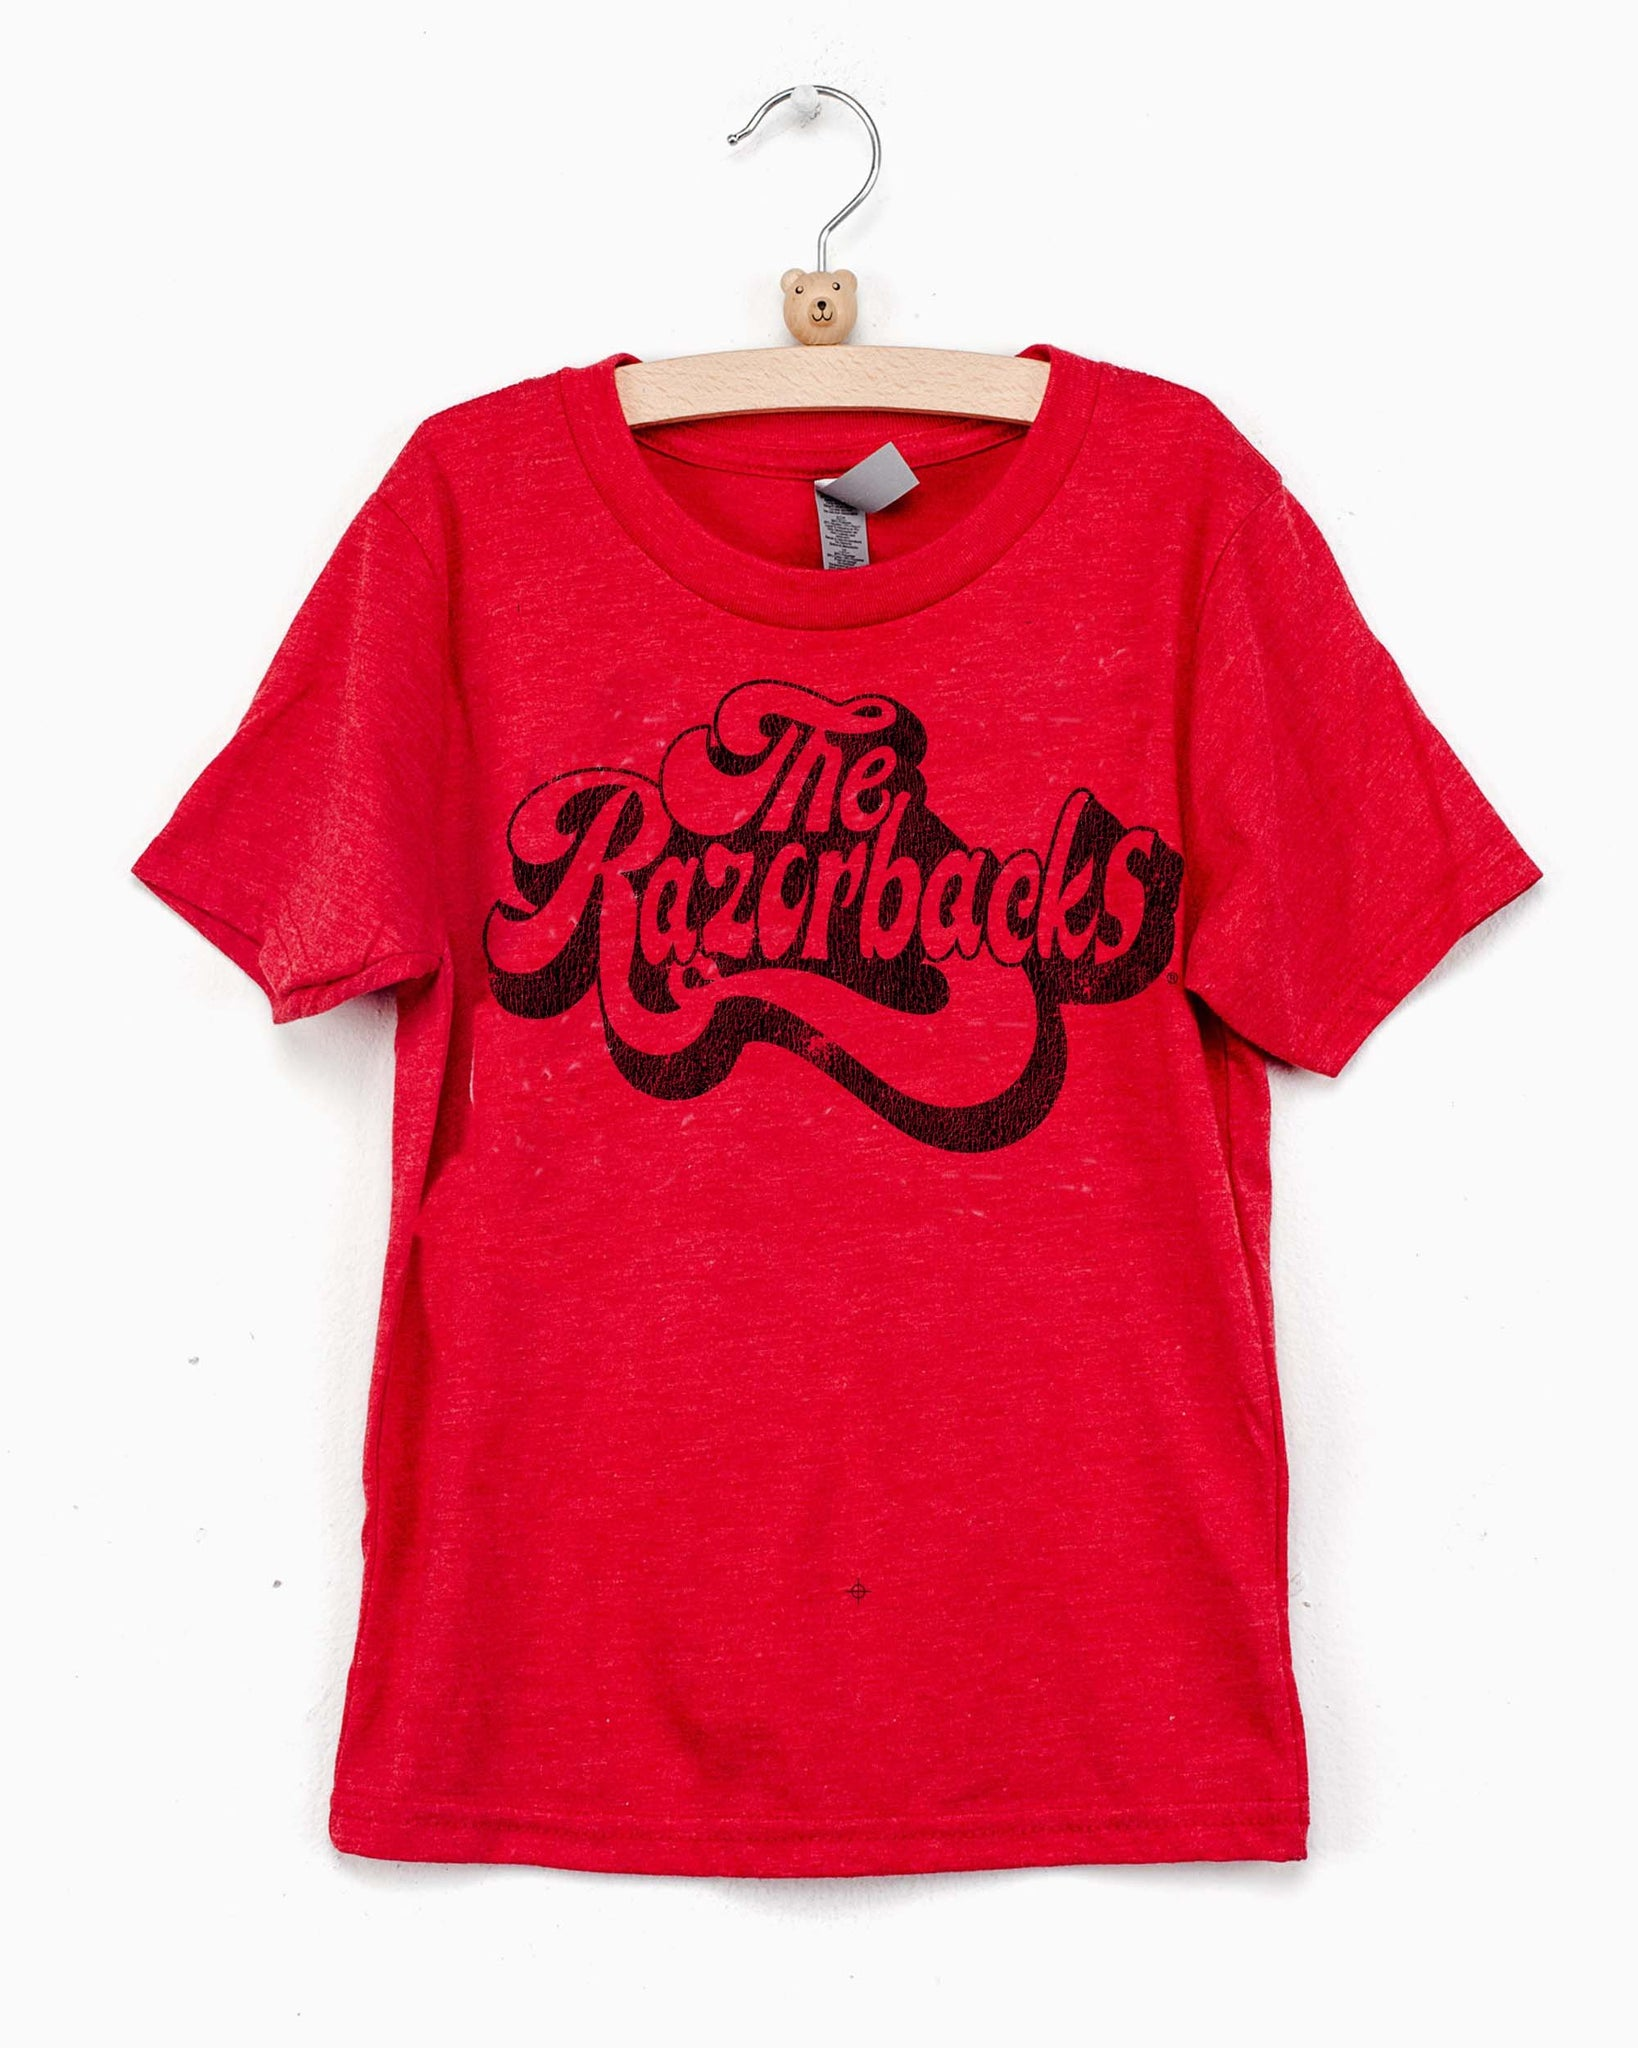 Arkansas Razorbacks 70's Tee